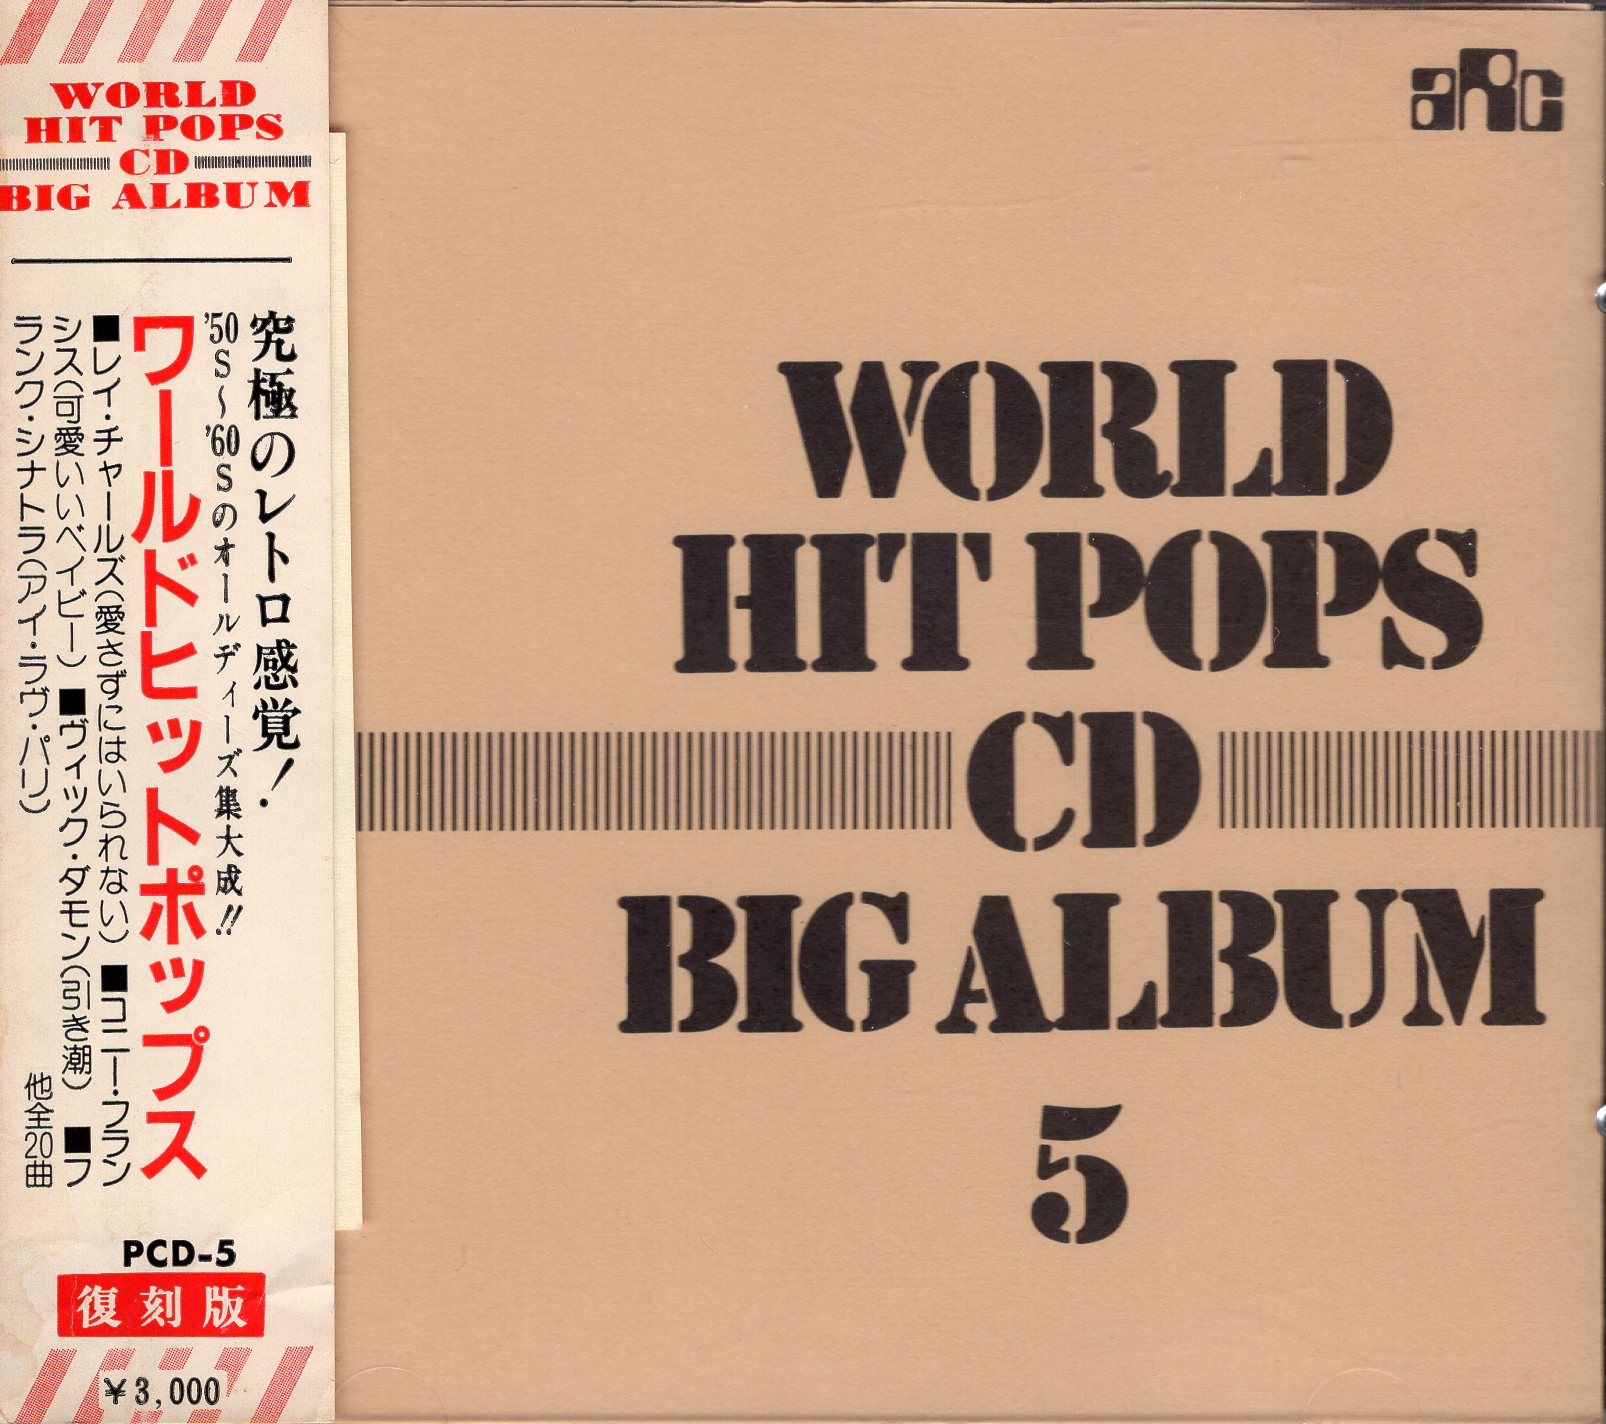 """World Hit Pops DC Big Album 5"""